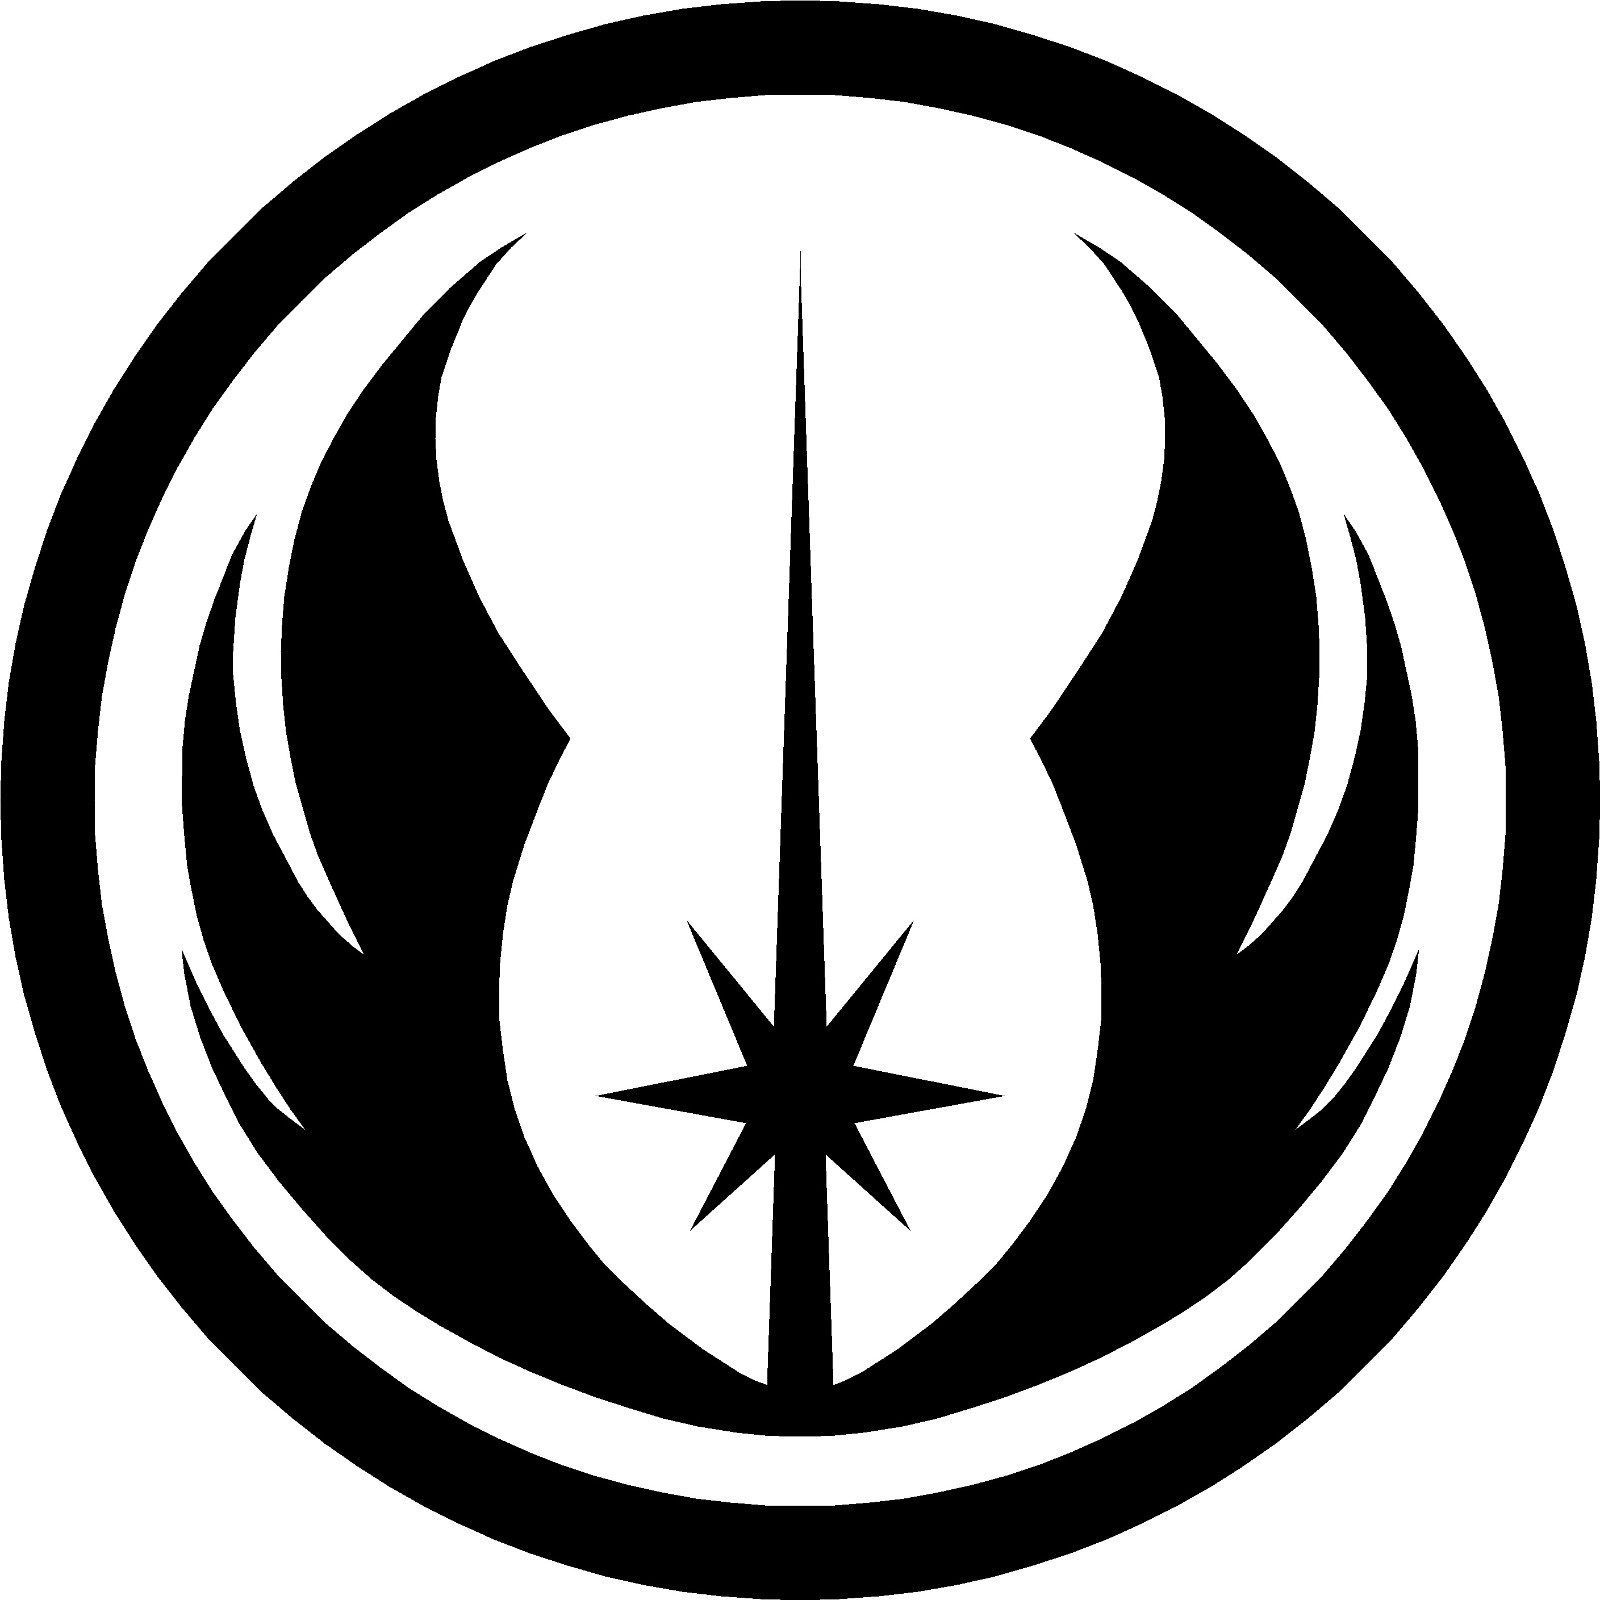 £3 5 gbp 2x star wars logo jedi order vinyl decal sticker ebay collectibles